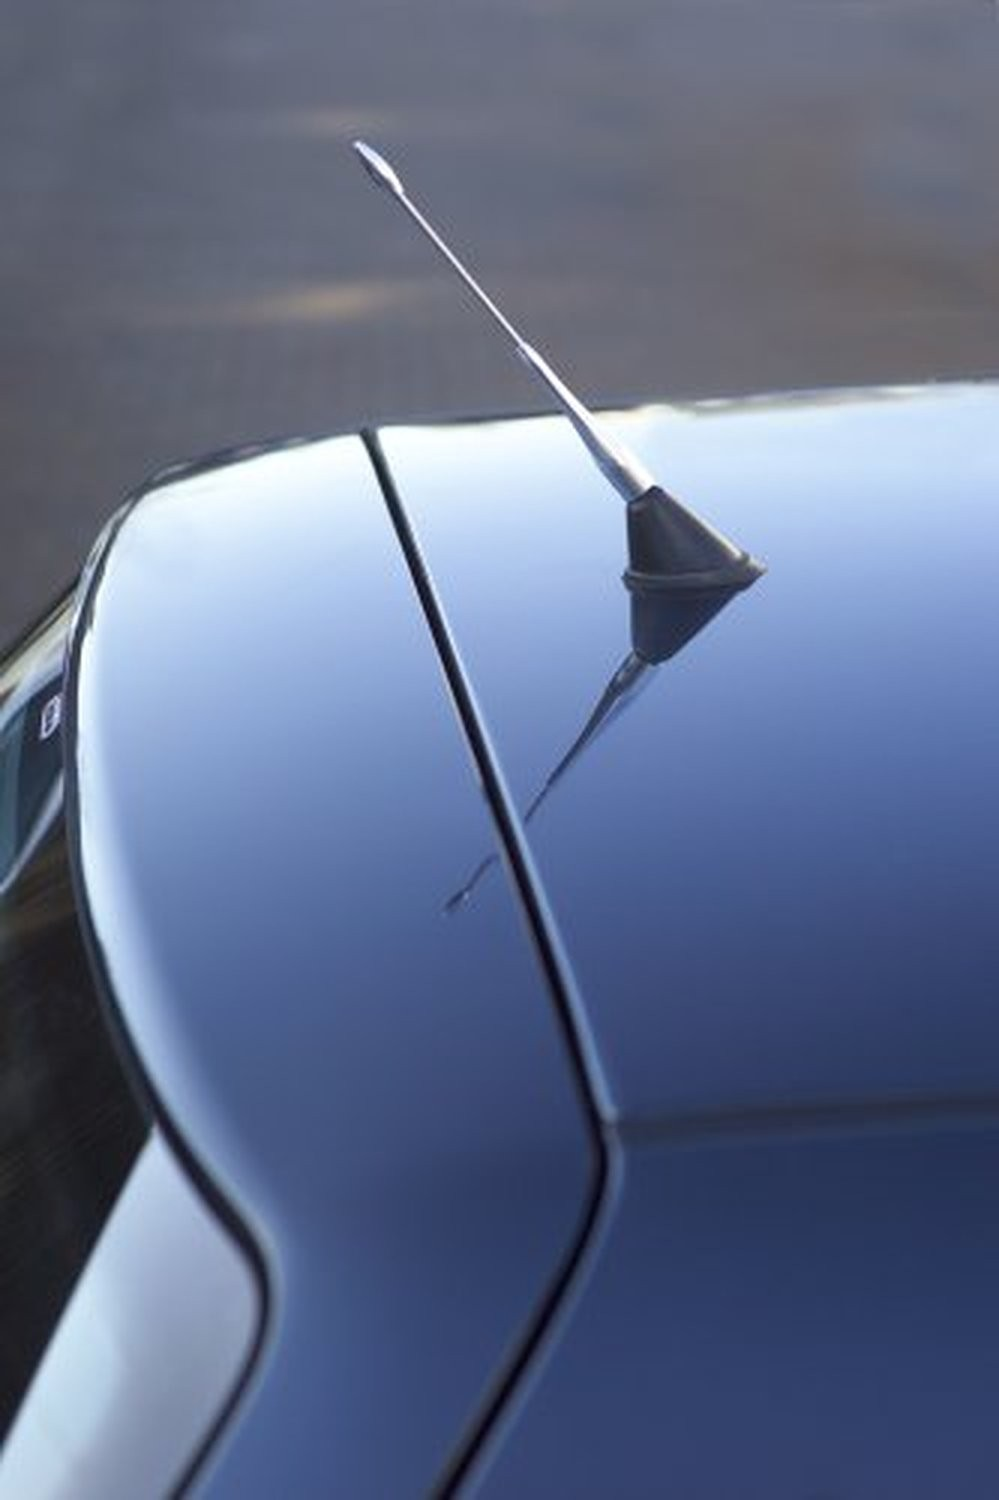 Richbrook Anti Theft Silver Car Aerial - Fits all cars